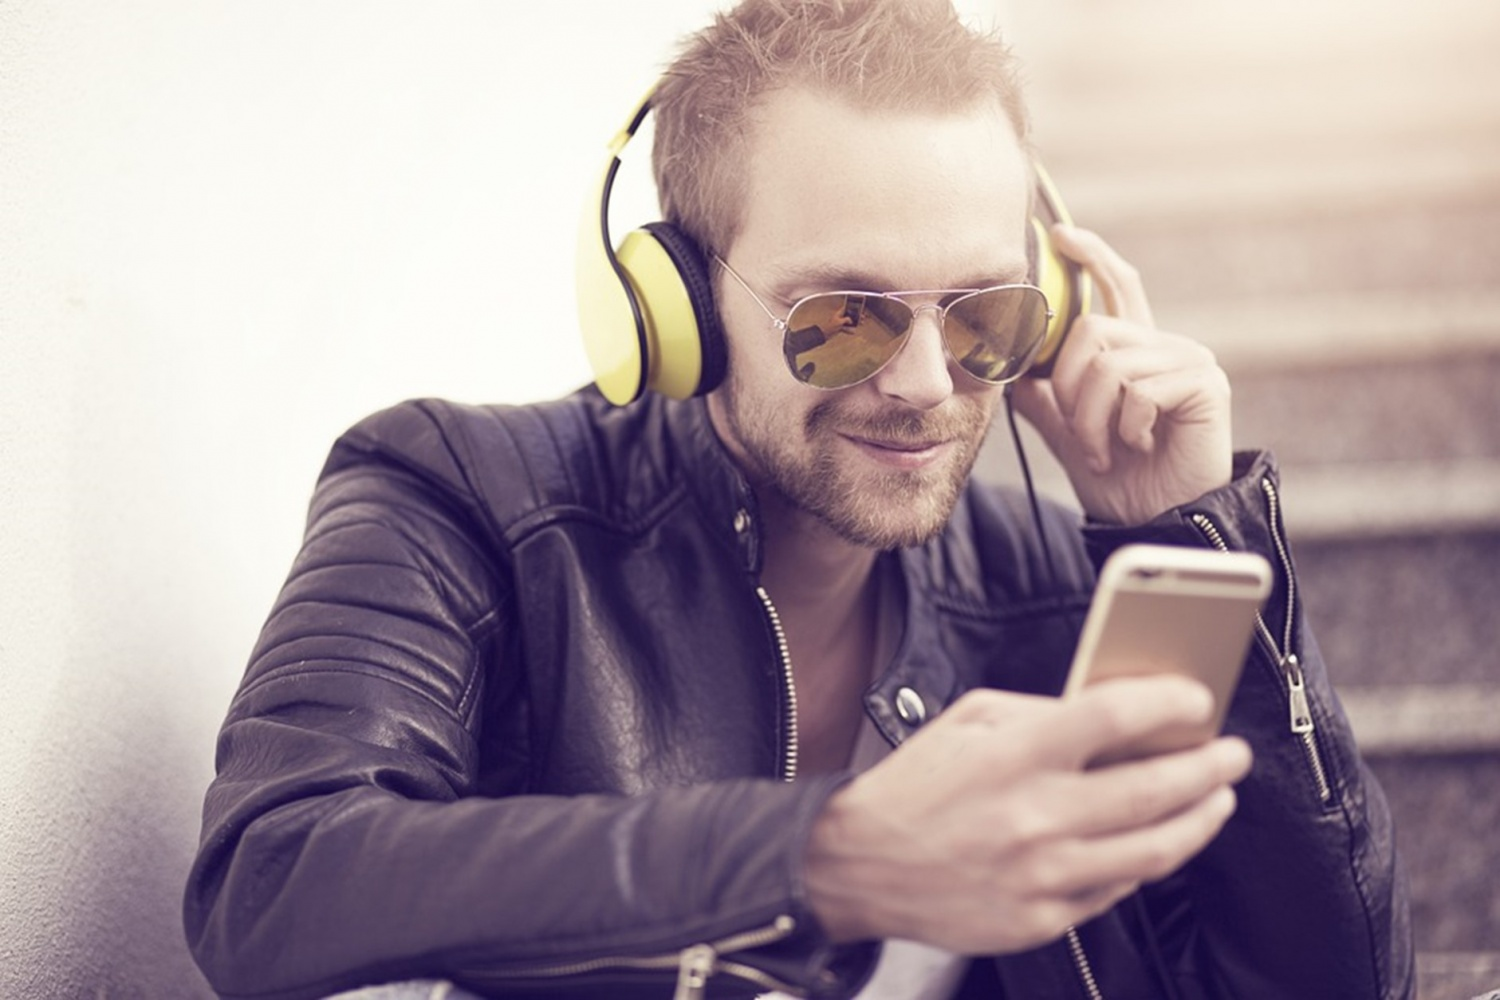 10 Tips and Tricks for Better Online Streaming